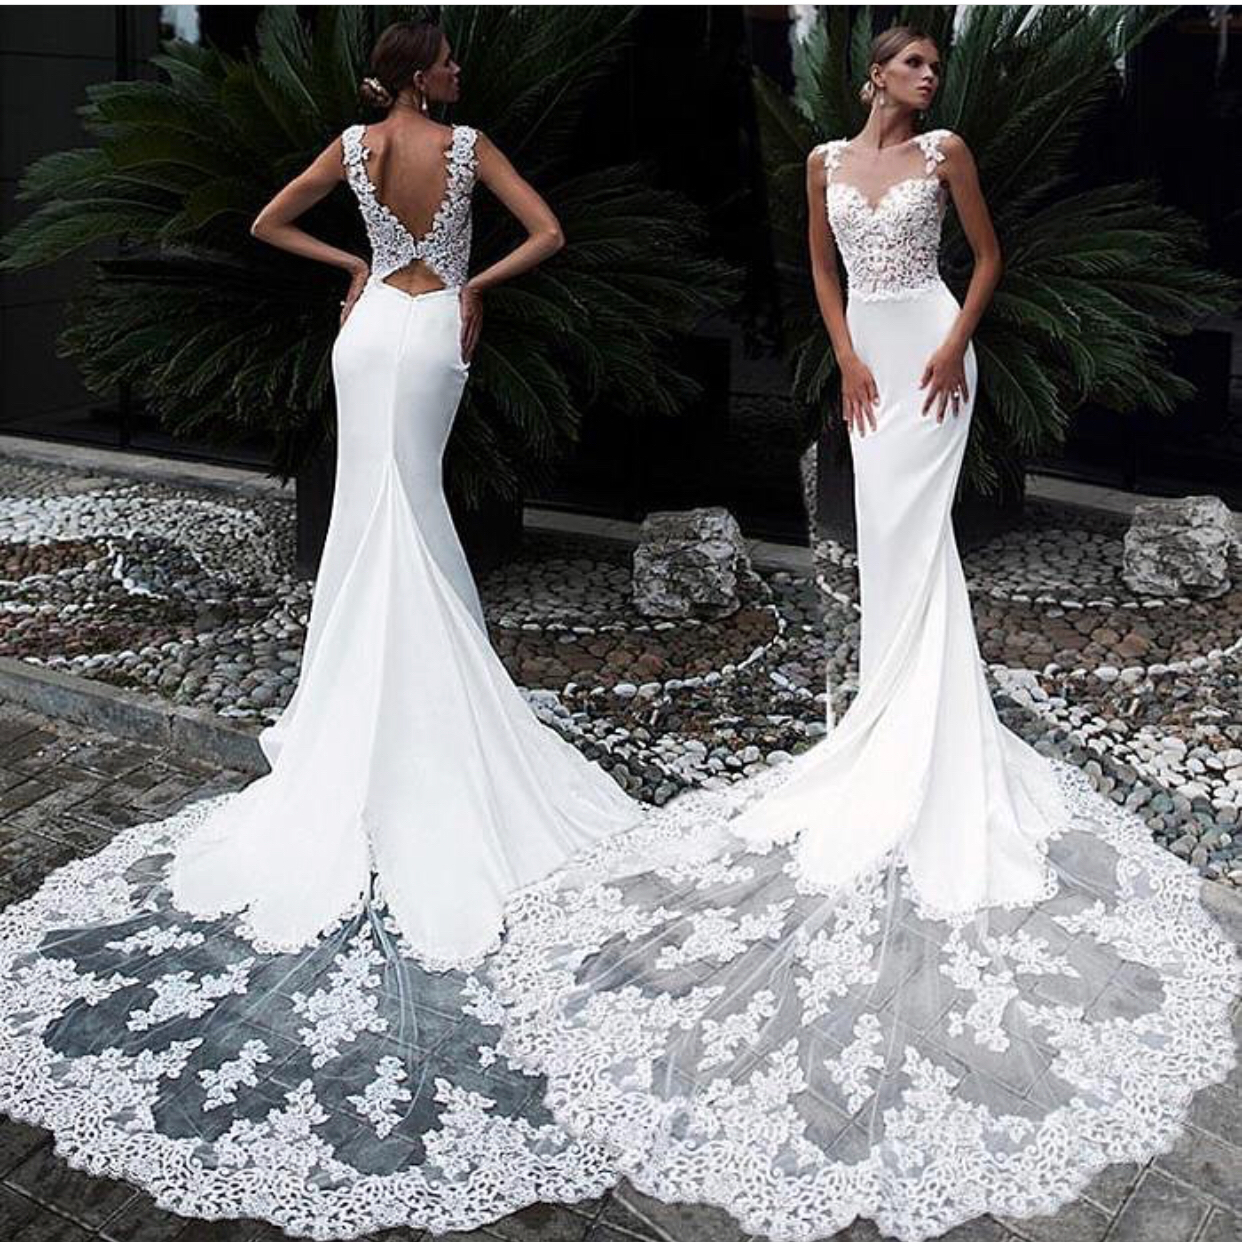 Wedding Dresses: Mermaid Wedding Dress, Lace Applique Wedding Dress, Sexy